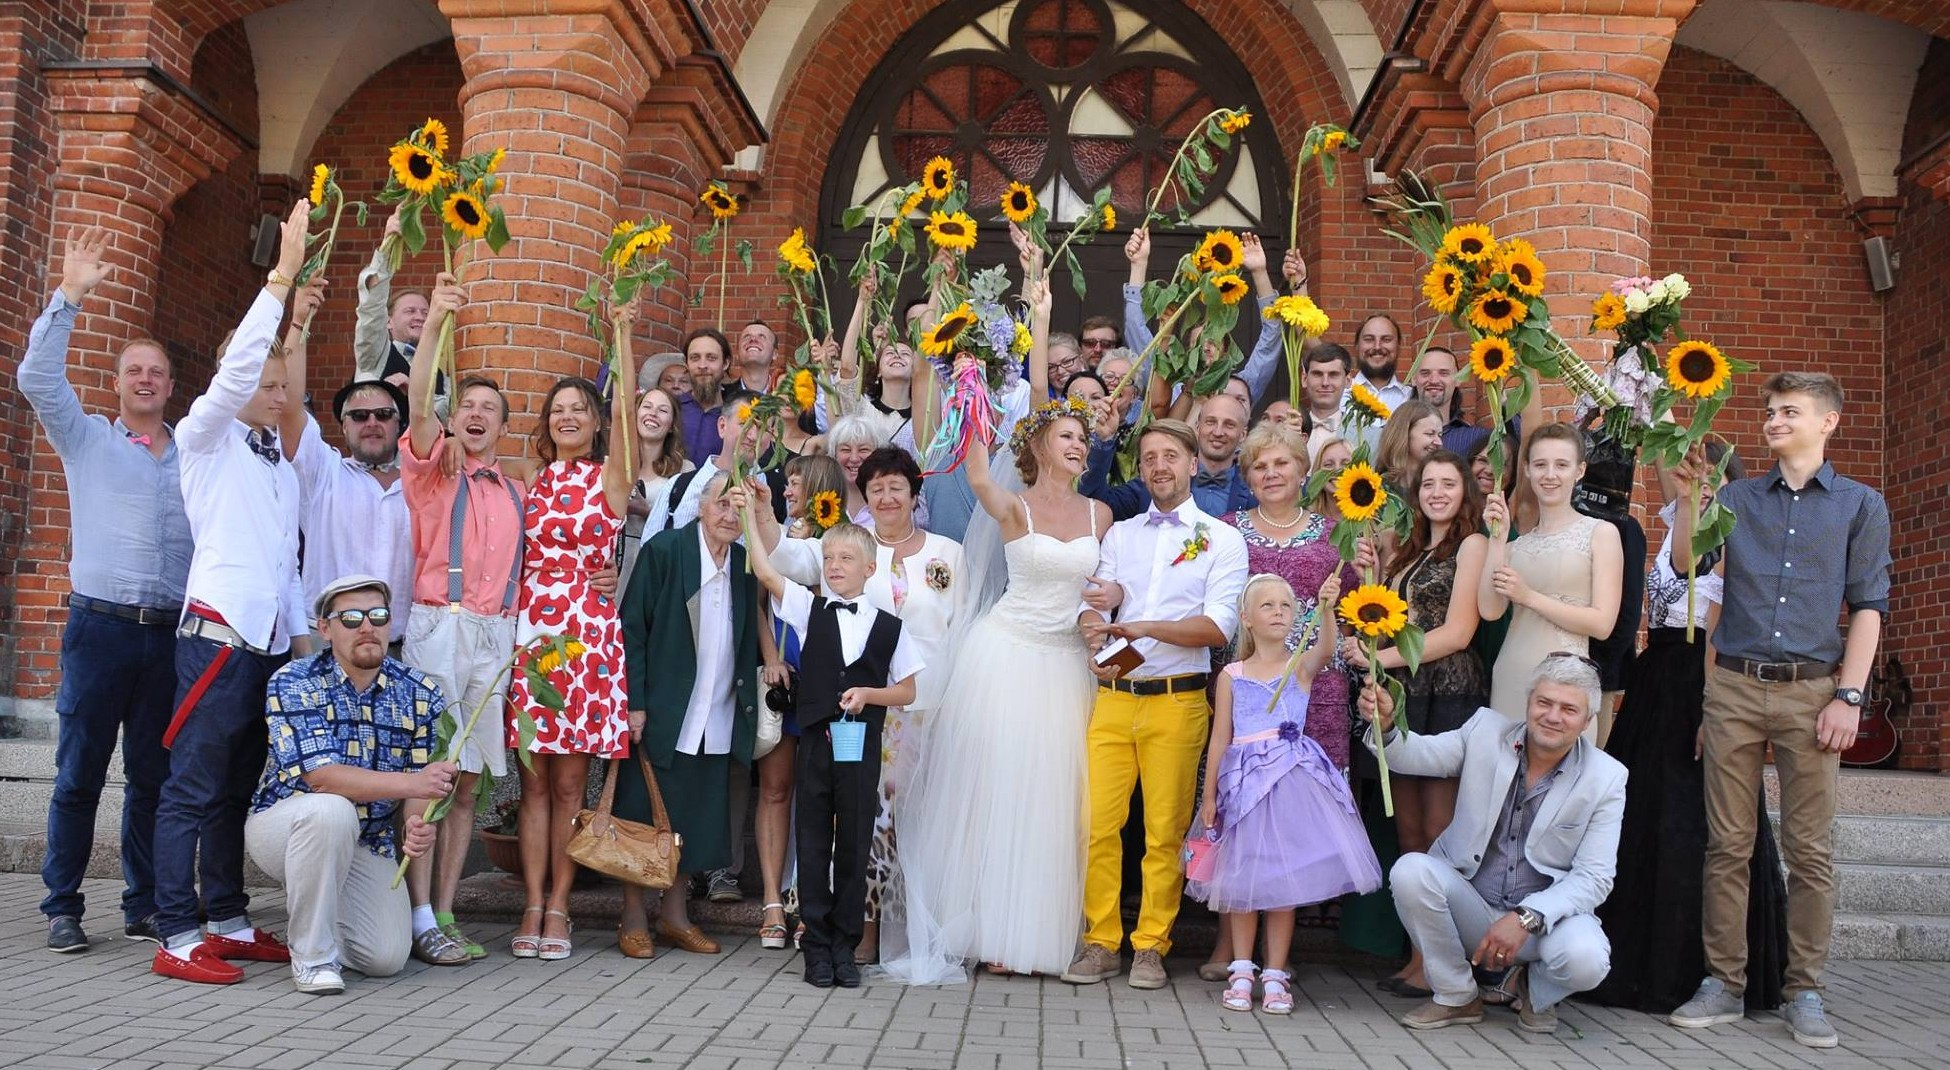 Married in Riga, Latvia on August 15, 2015 - Arnis Rupainis and Elizaveta Smirnova